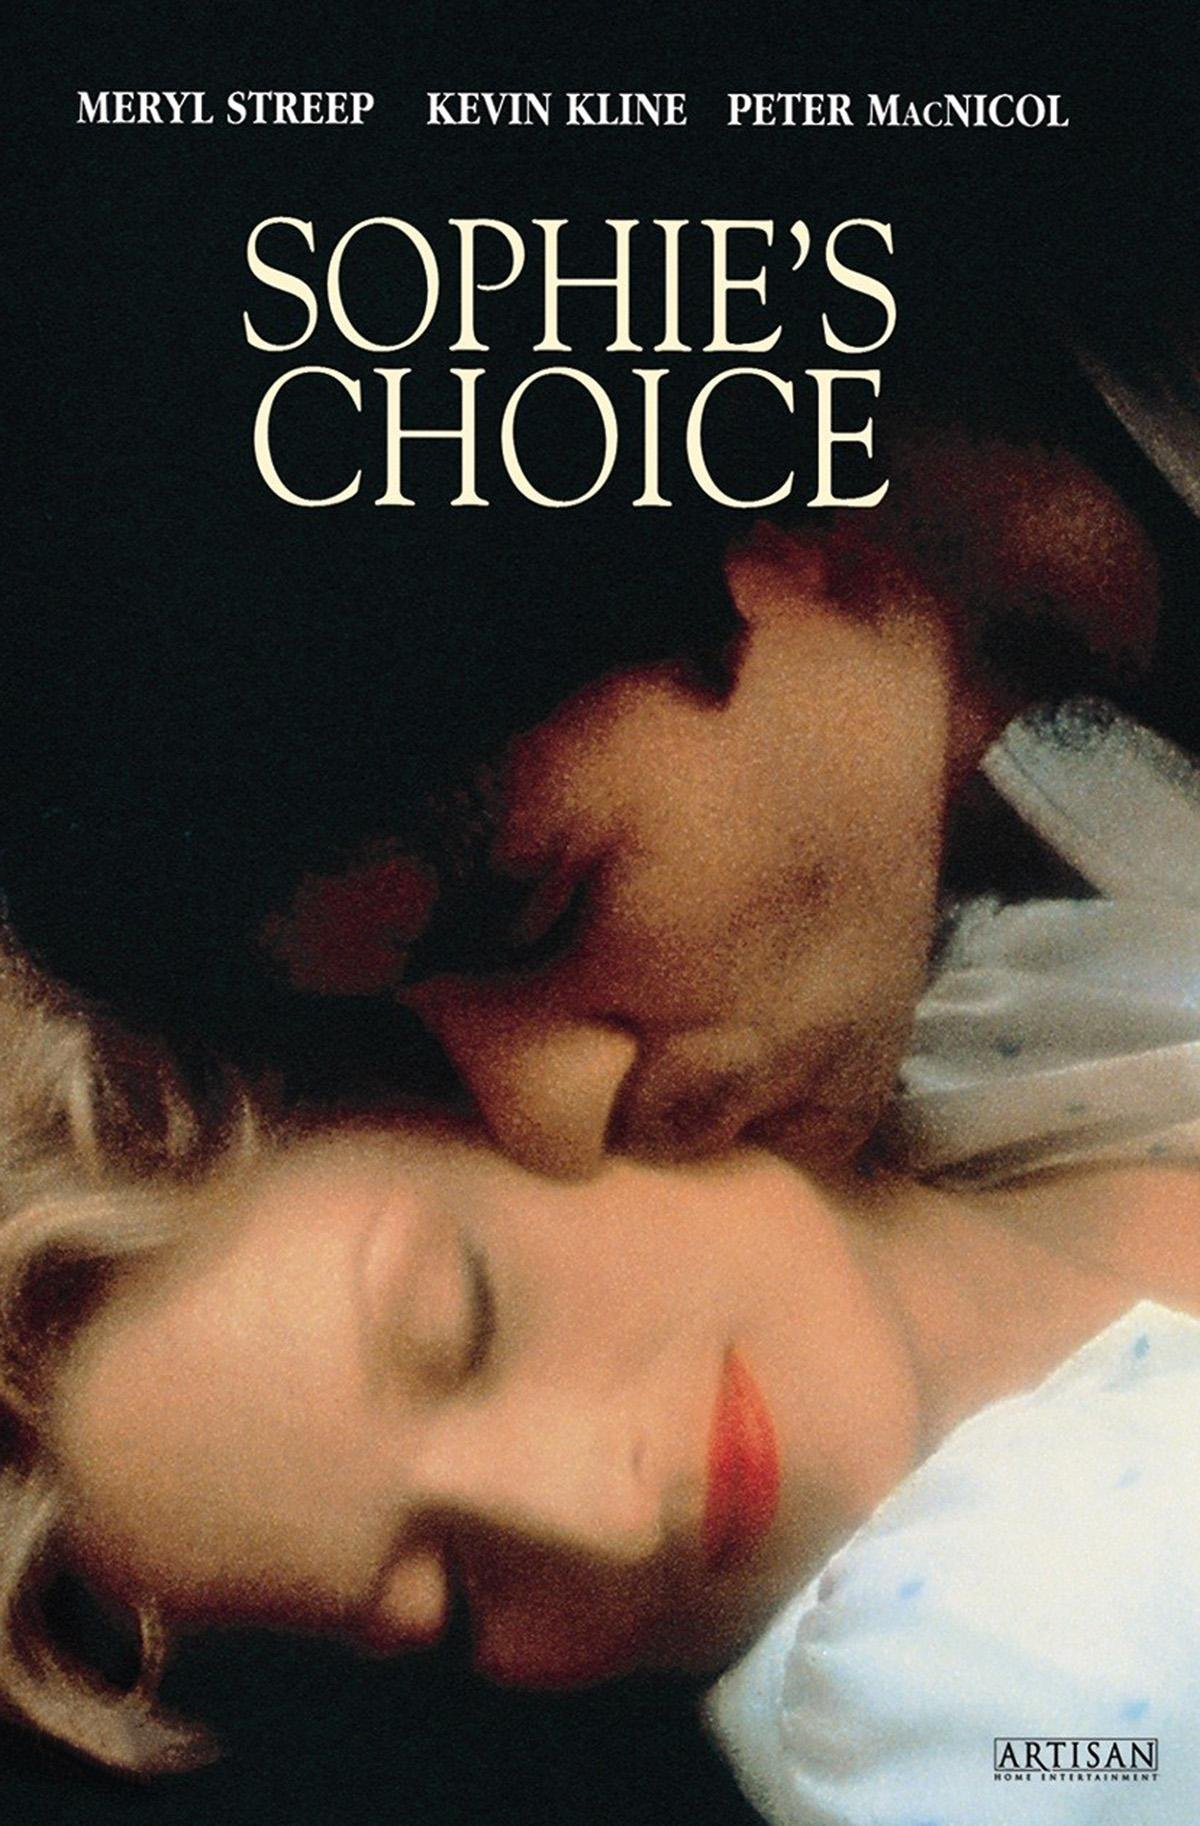 Amazon.com: Watch Sophie's Choice | Prime Video